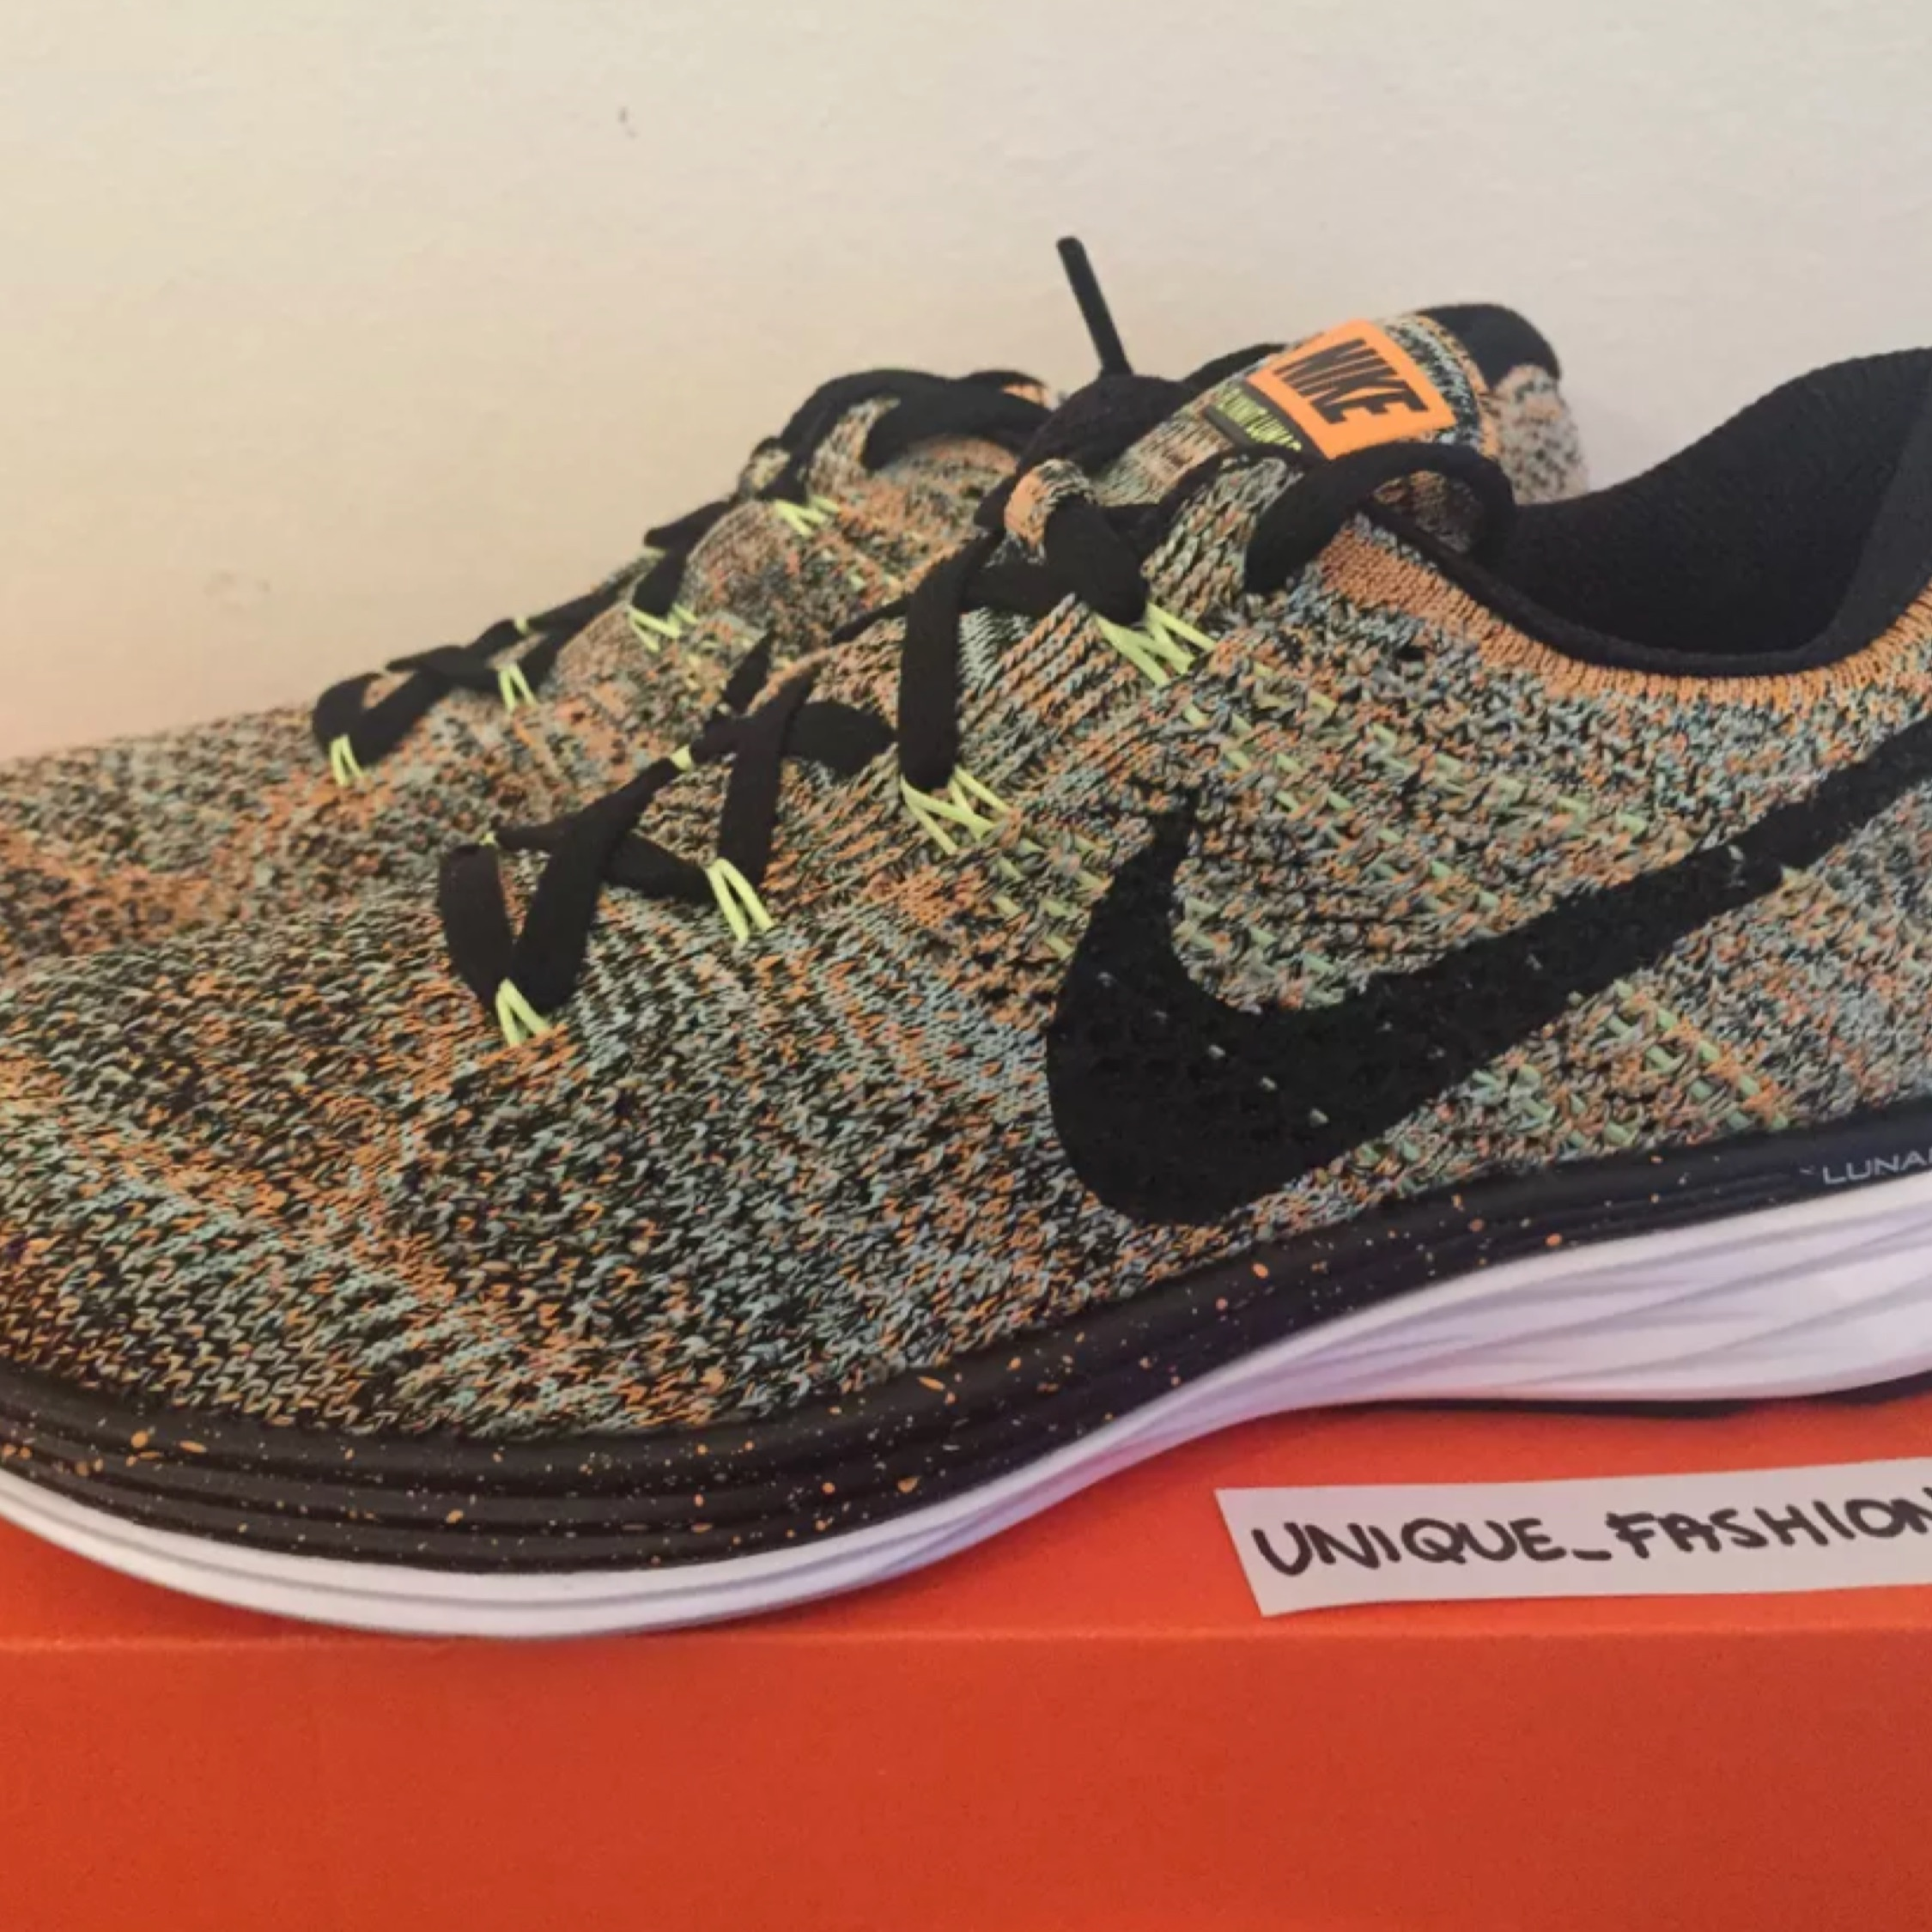 new concept 386d0 bdcaf Nike Flyknit Lunar 3 Bright Multi New Us5.5